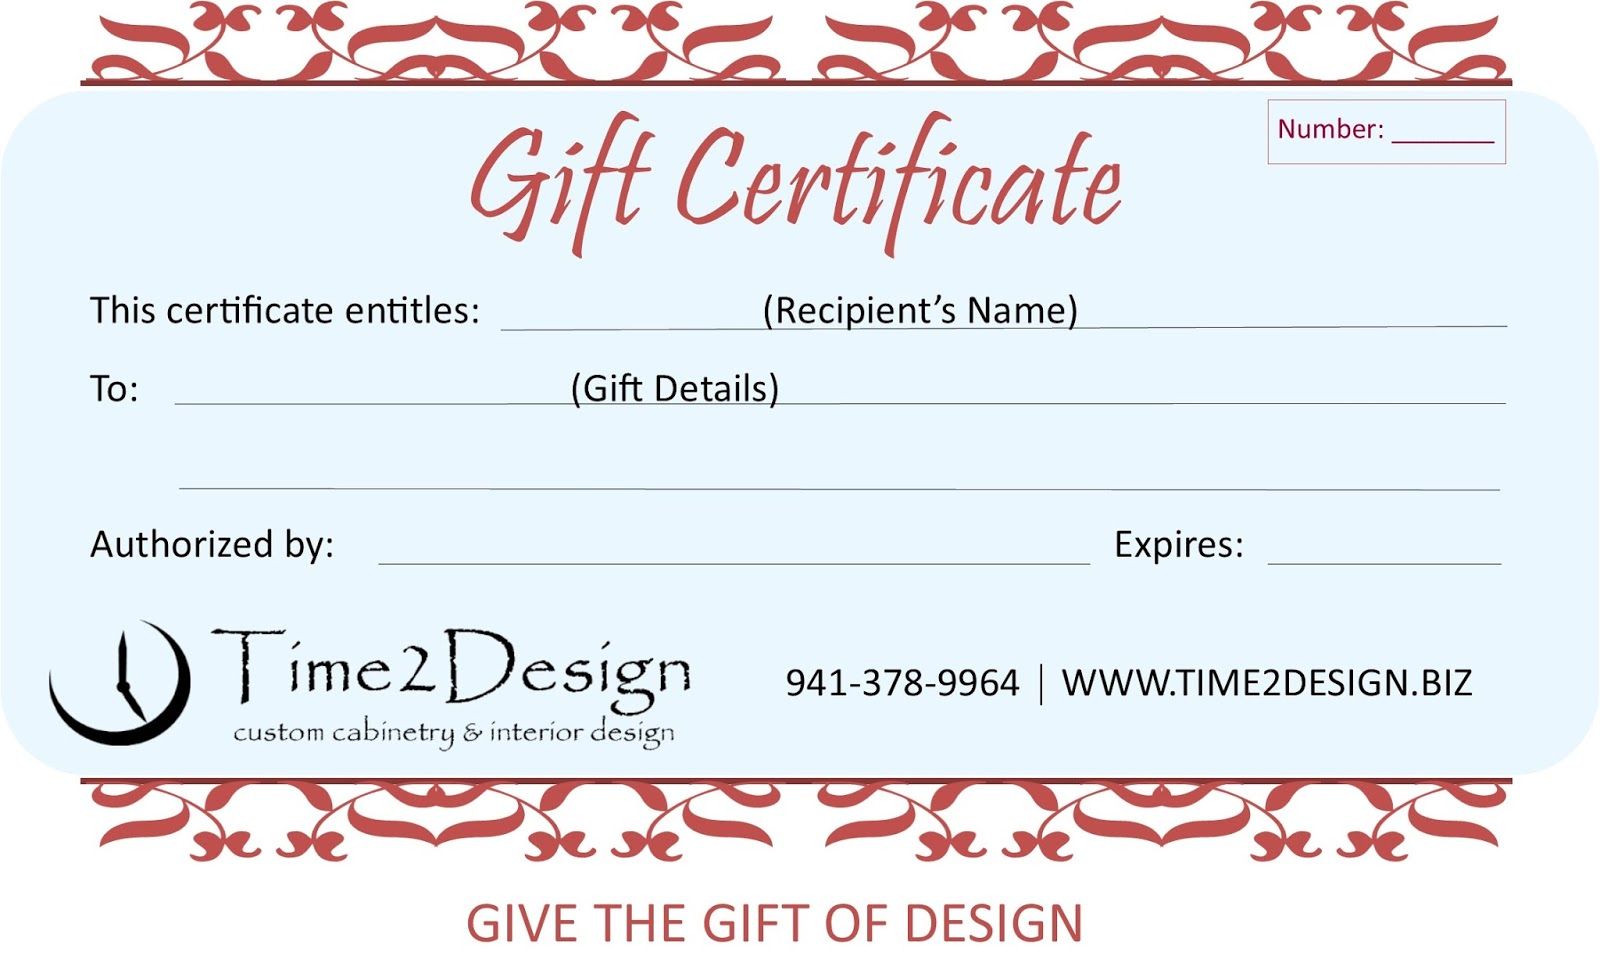 gift certificates give the gift of design